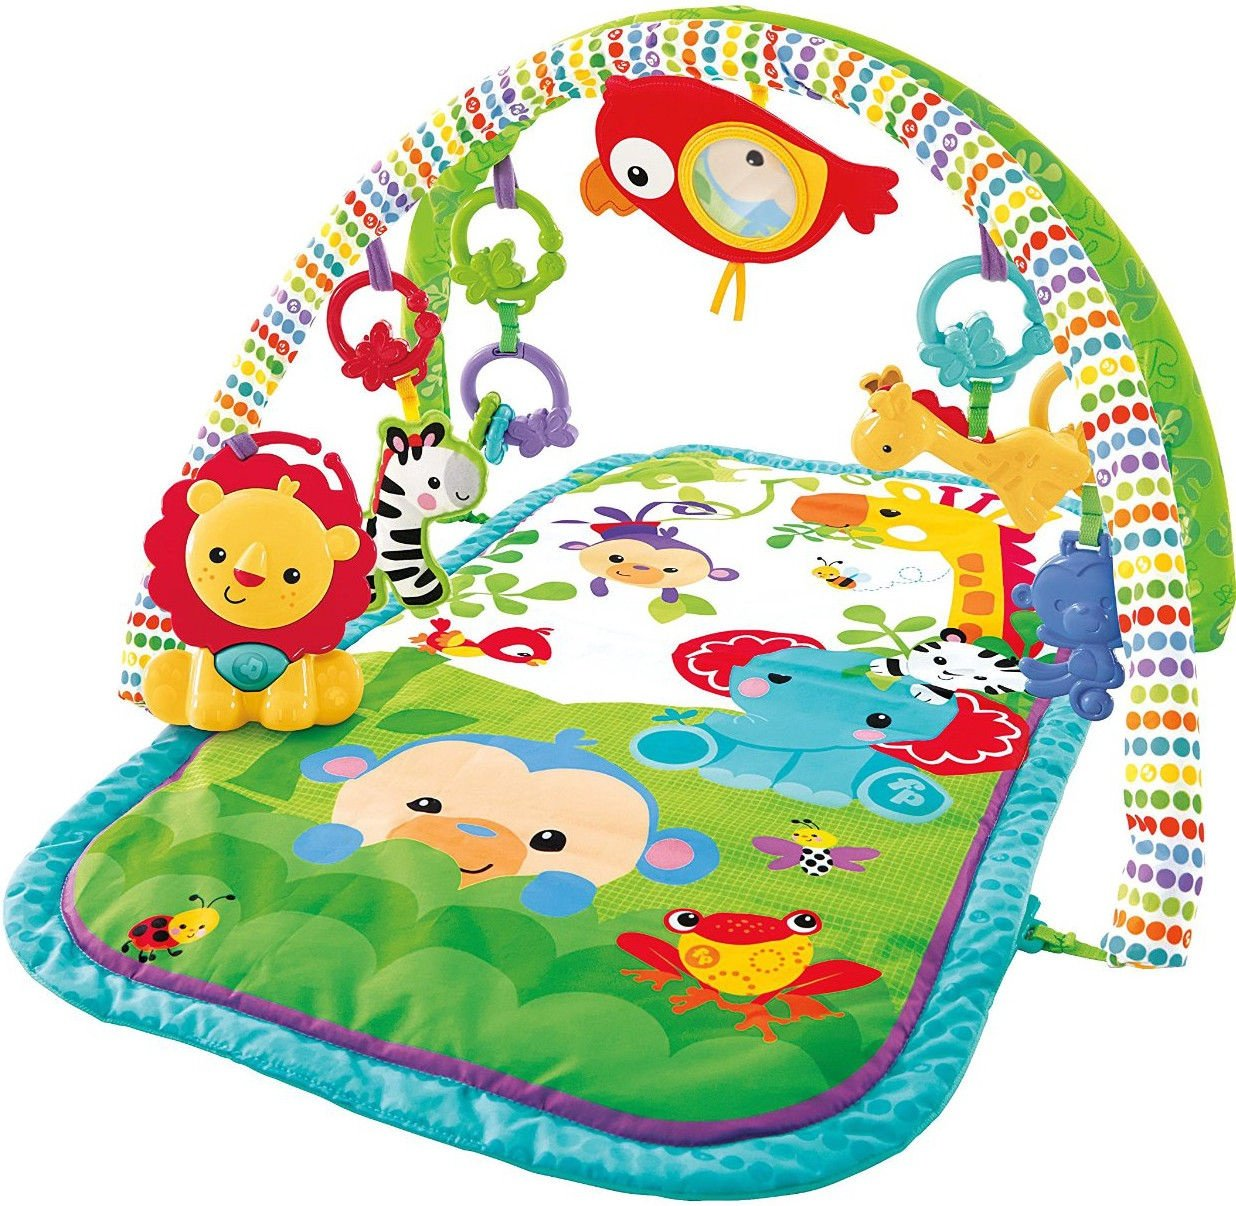 Aktivitātes paklājs Fisher Price Rainforest Friends 3in1 Musical Activity Gym CHP85